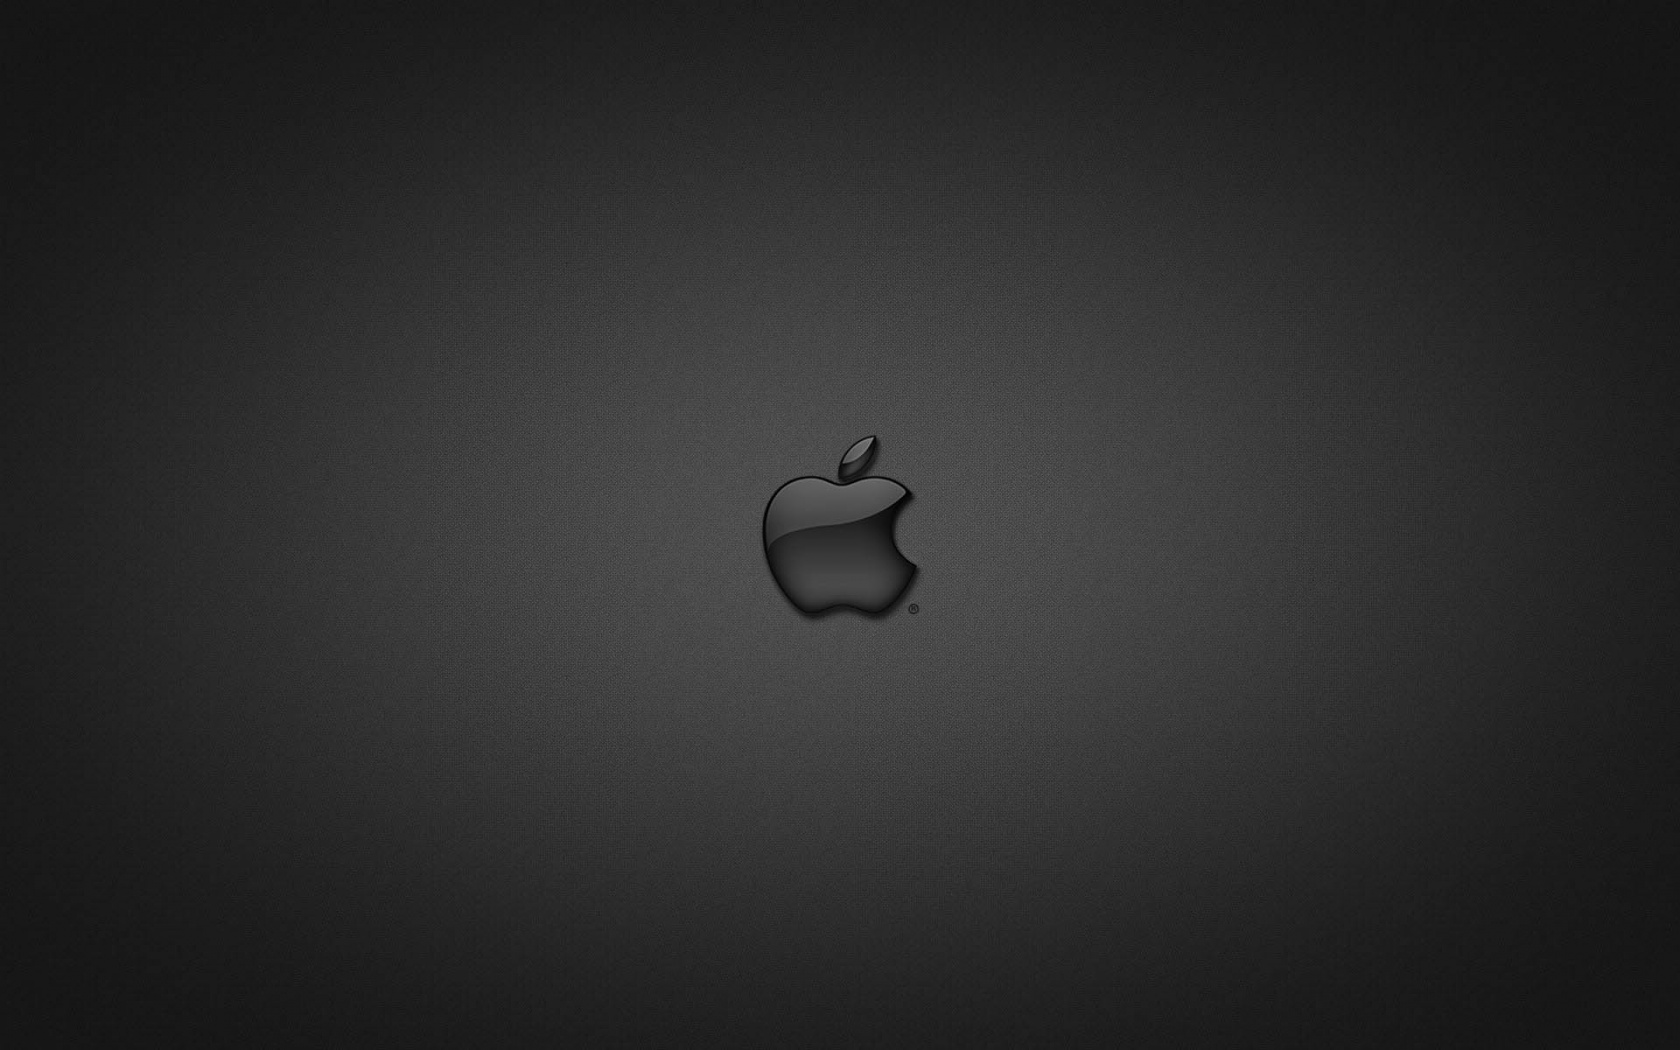 apple in glass black wallpapers in jpg format for free download